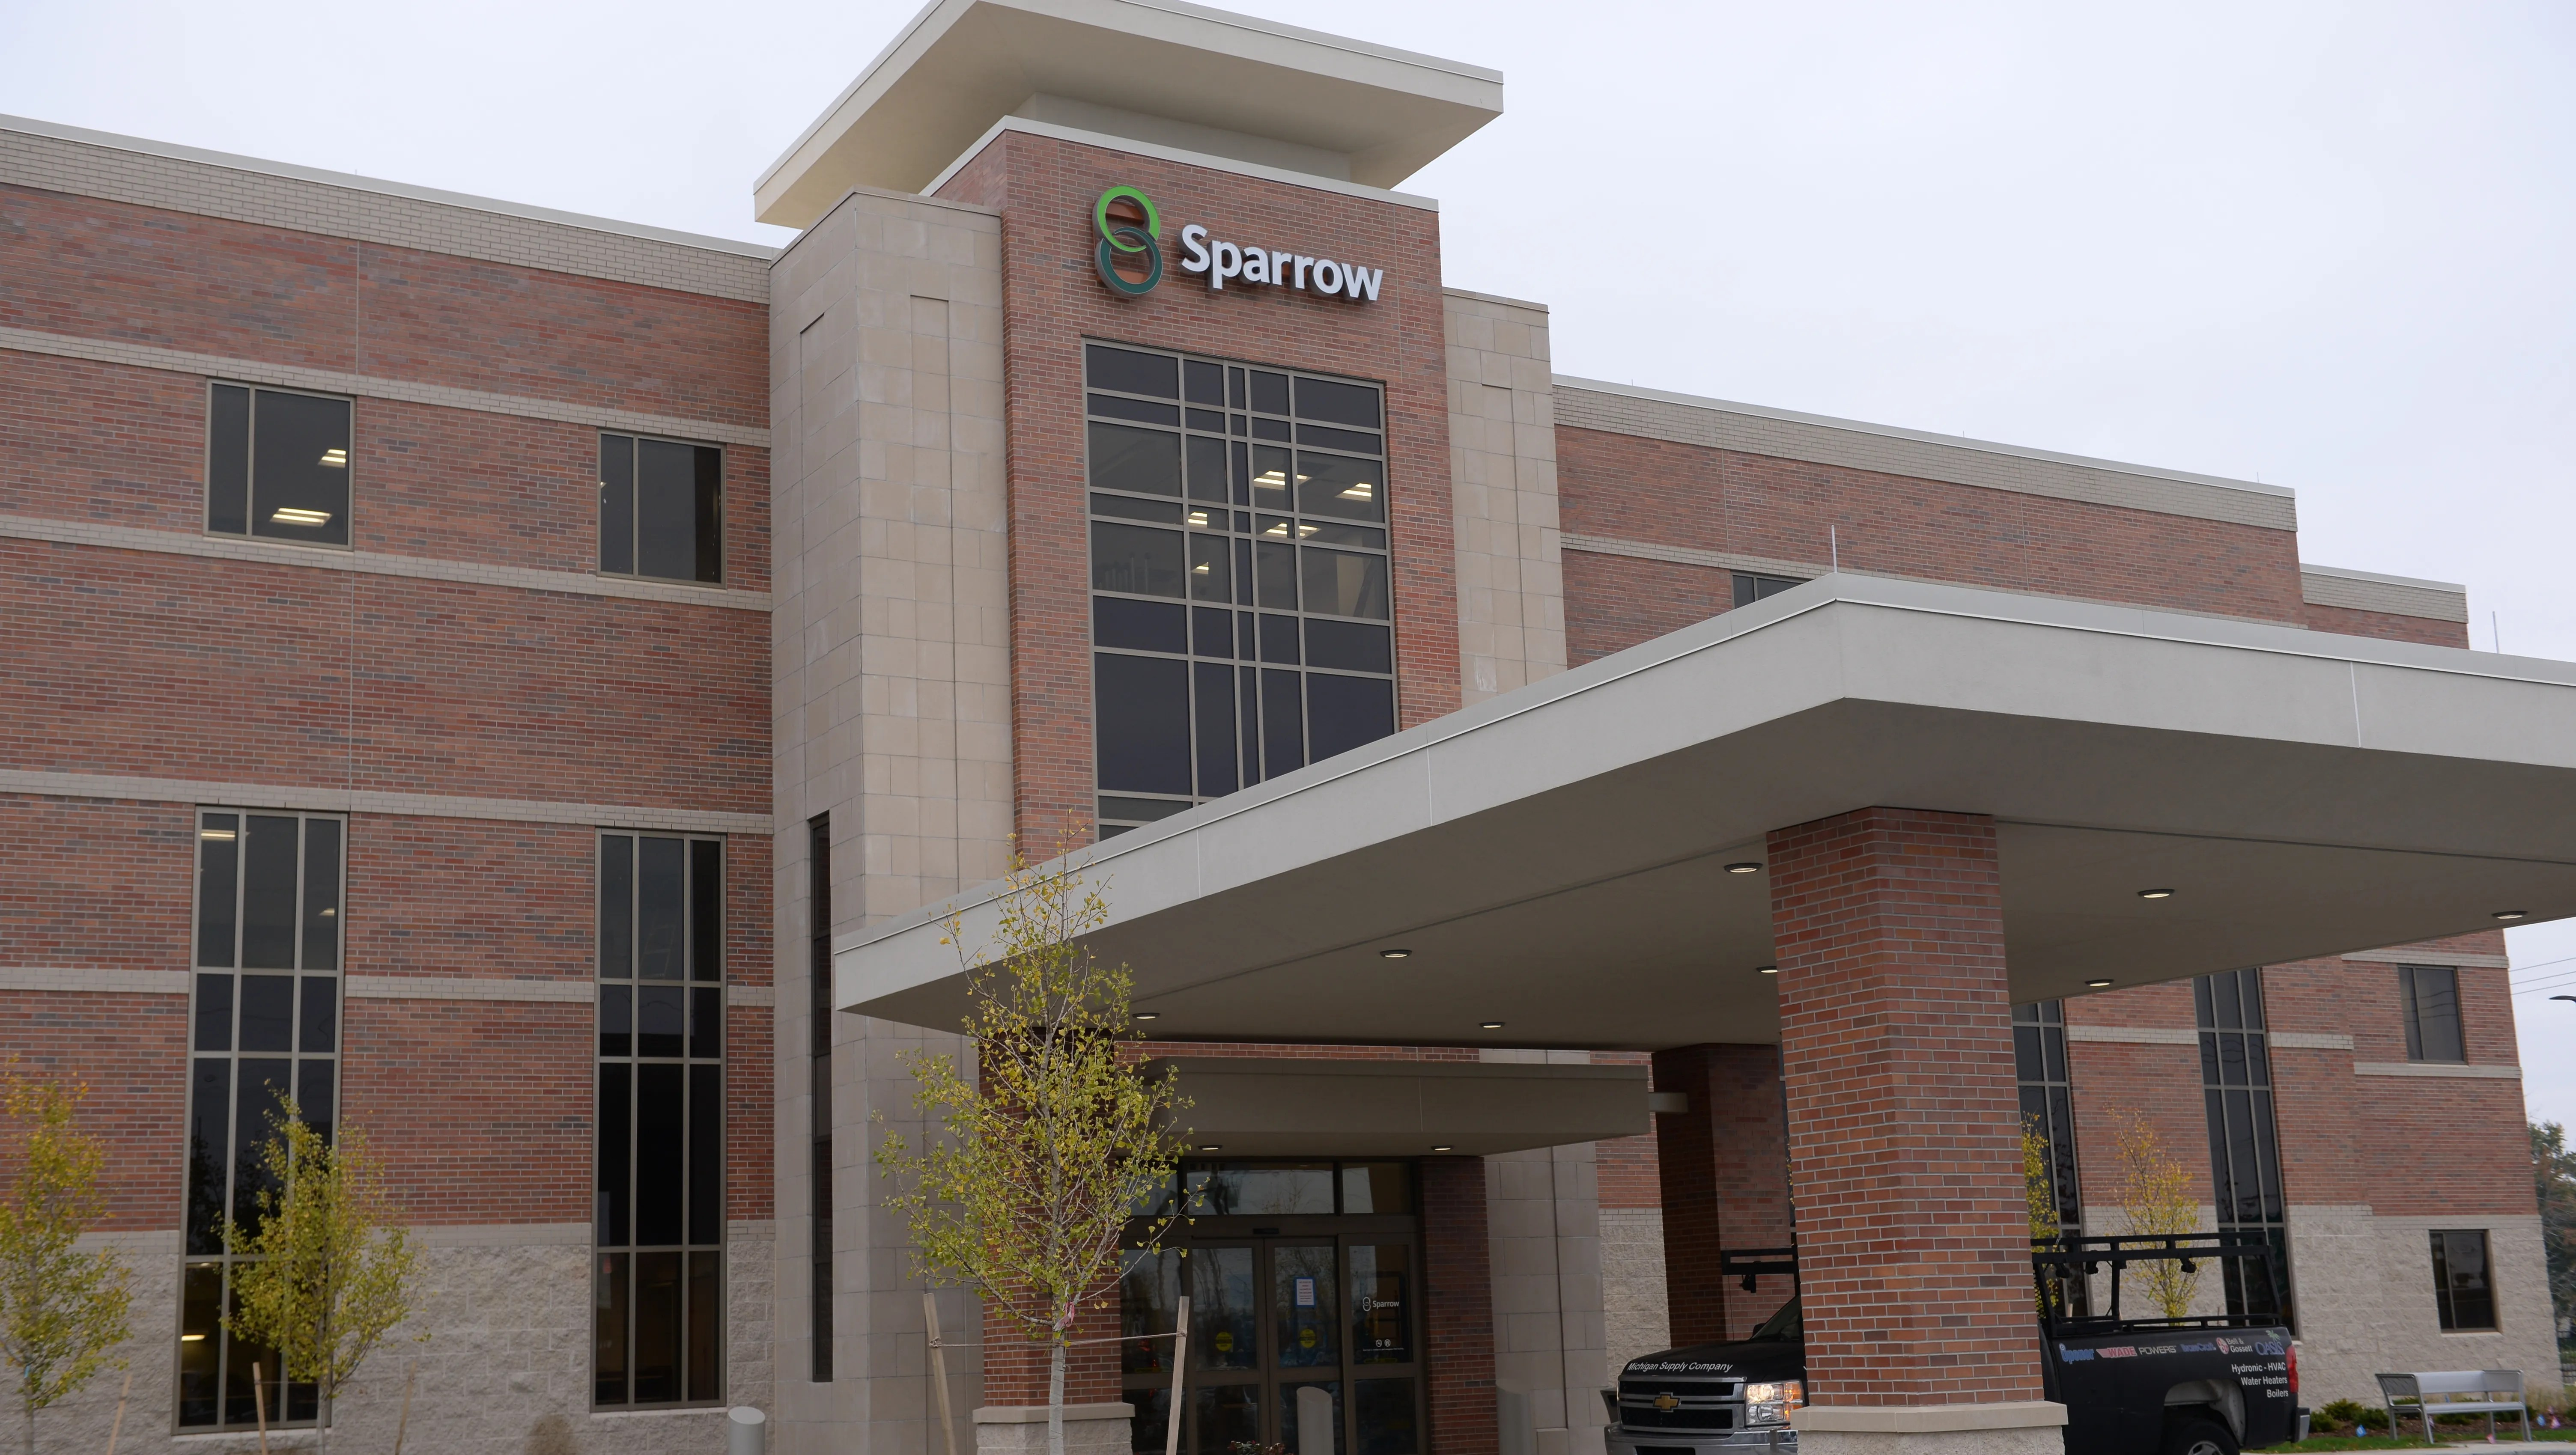 Sparrow Hospital accredited after initial patient safety